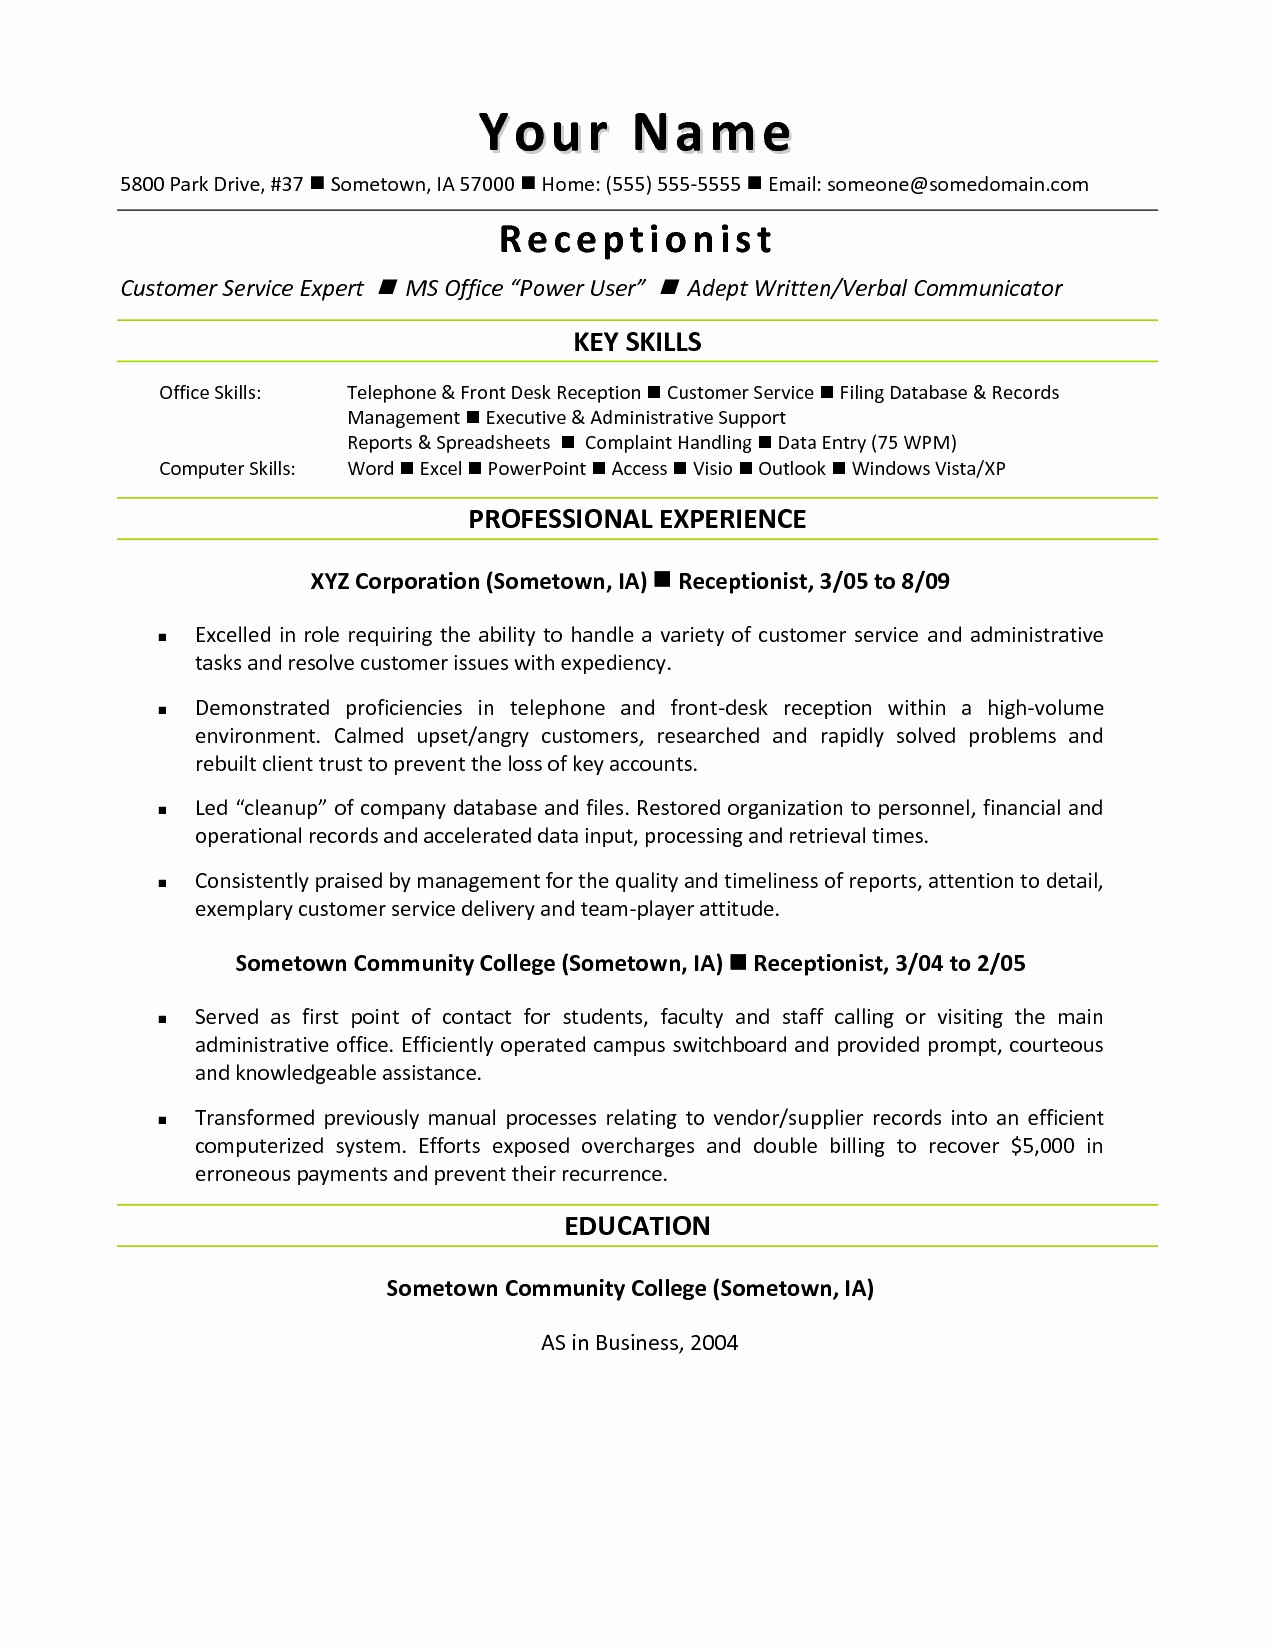 Patent Infringement Letter Template - Example A Resume Cover Letter Ideas